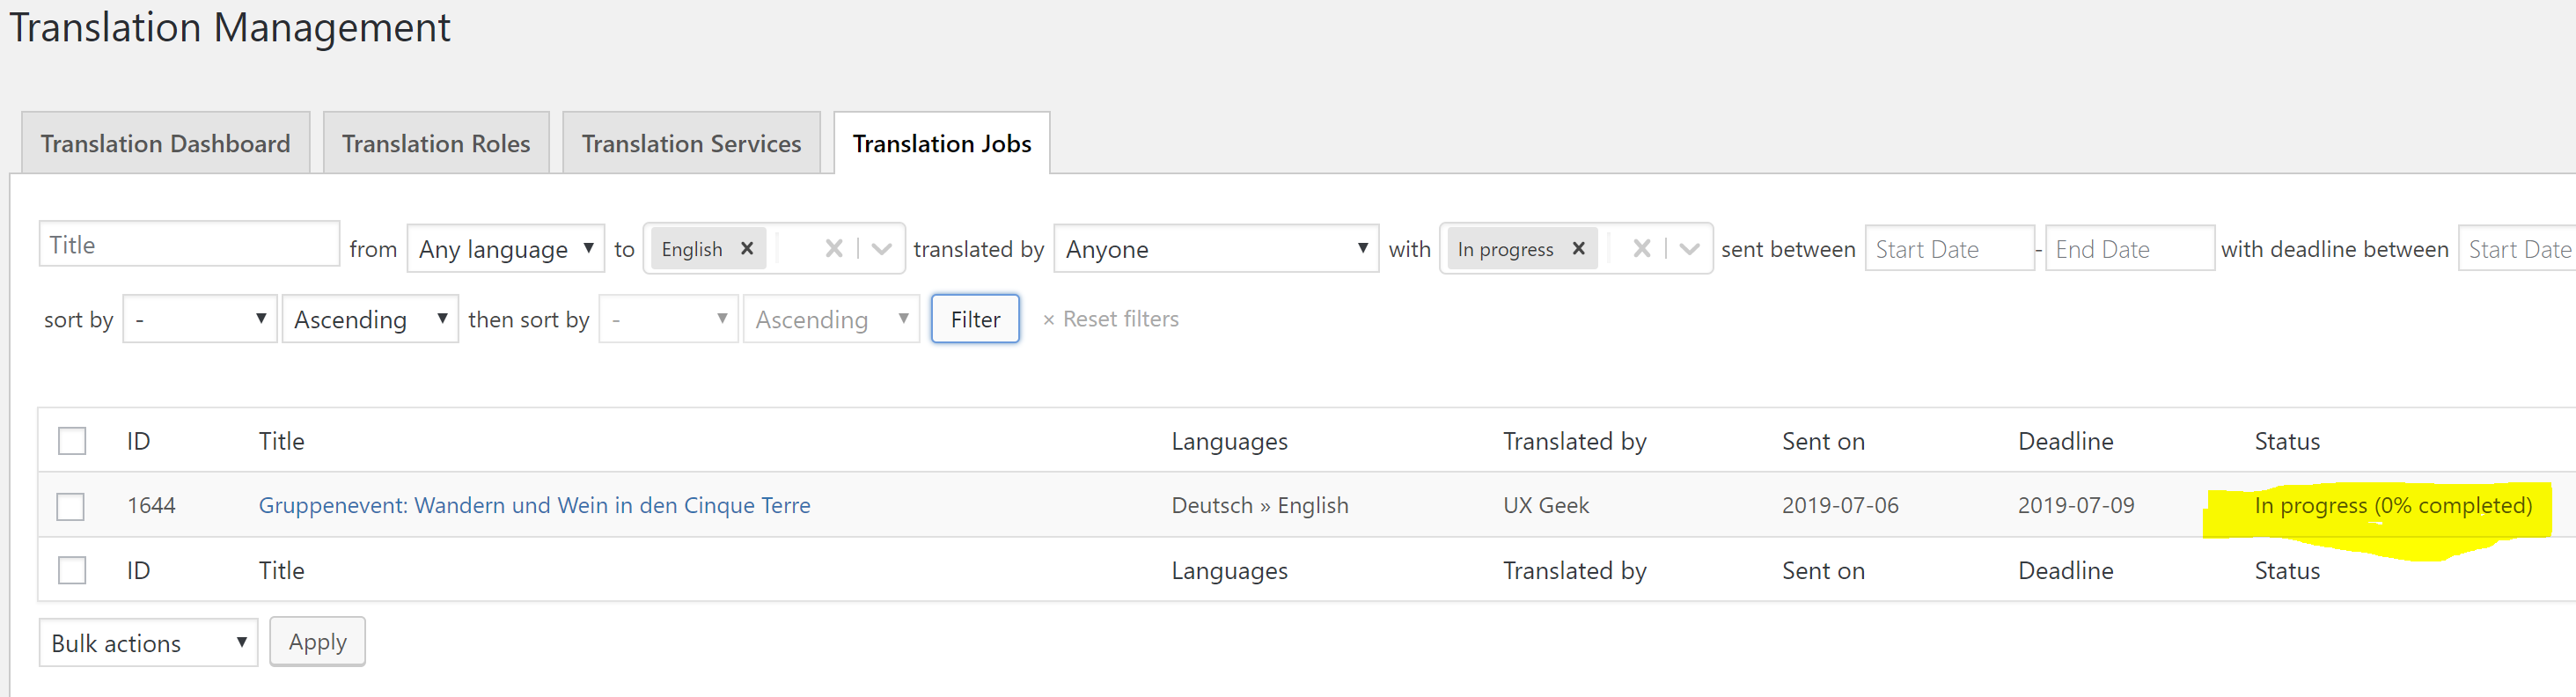 Translation Jobs in progress.PNG